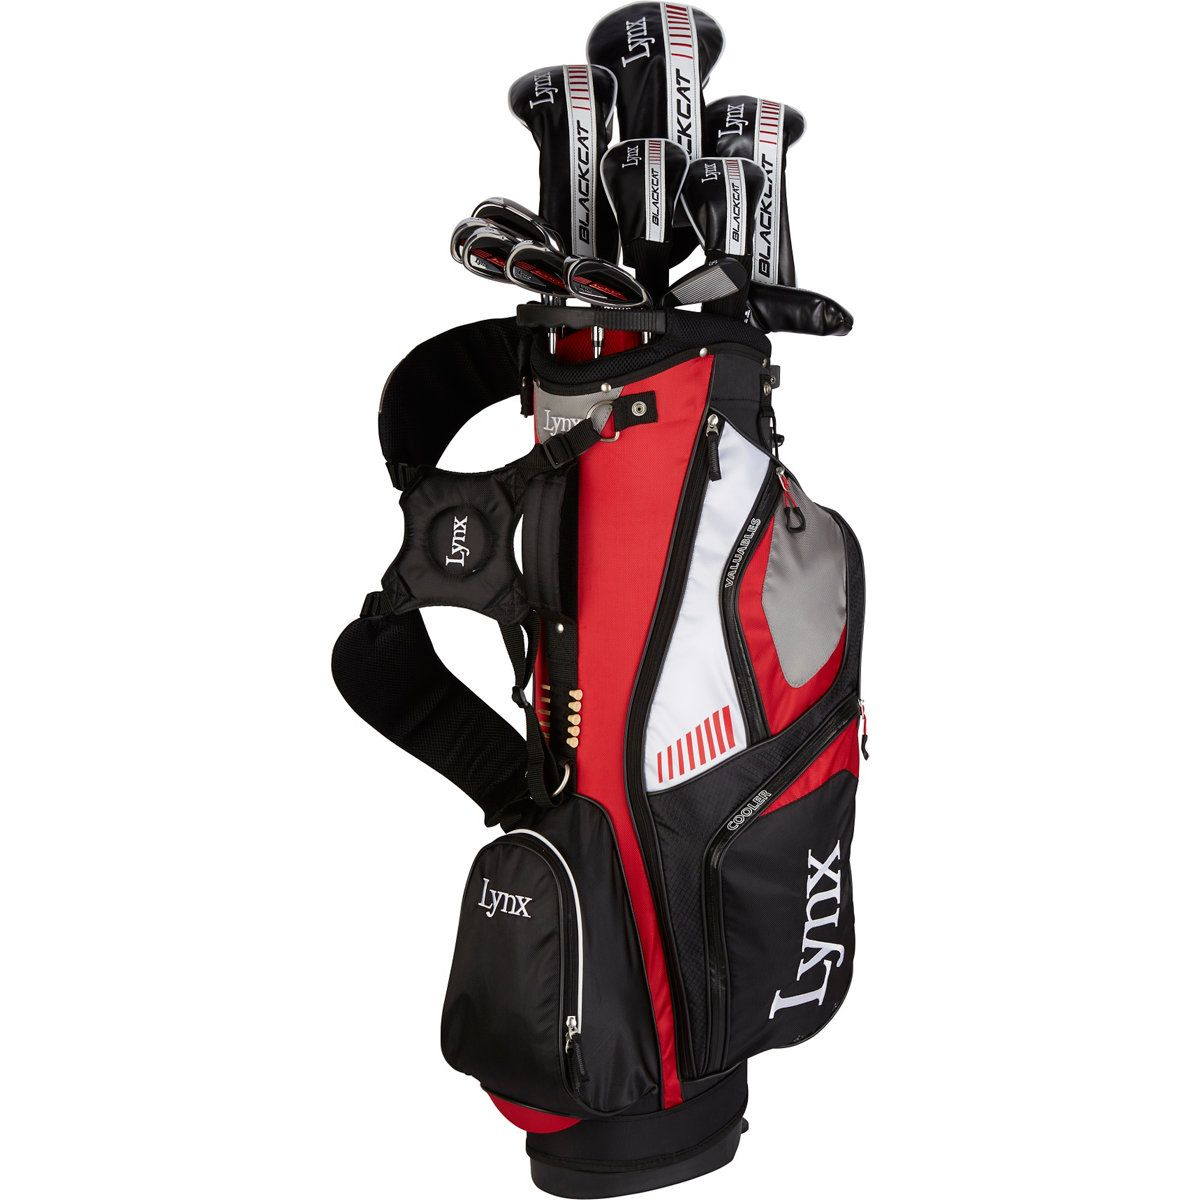 Visit Golf Galaxy To A Wide Selection Of Clubs Arel Equipment From The Top Brands Improve Your With Services Our Expert Pros